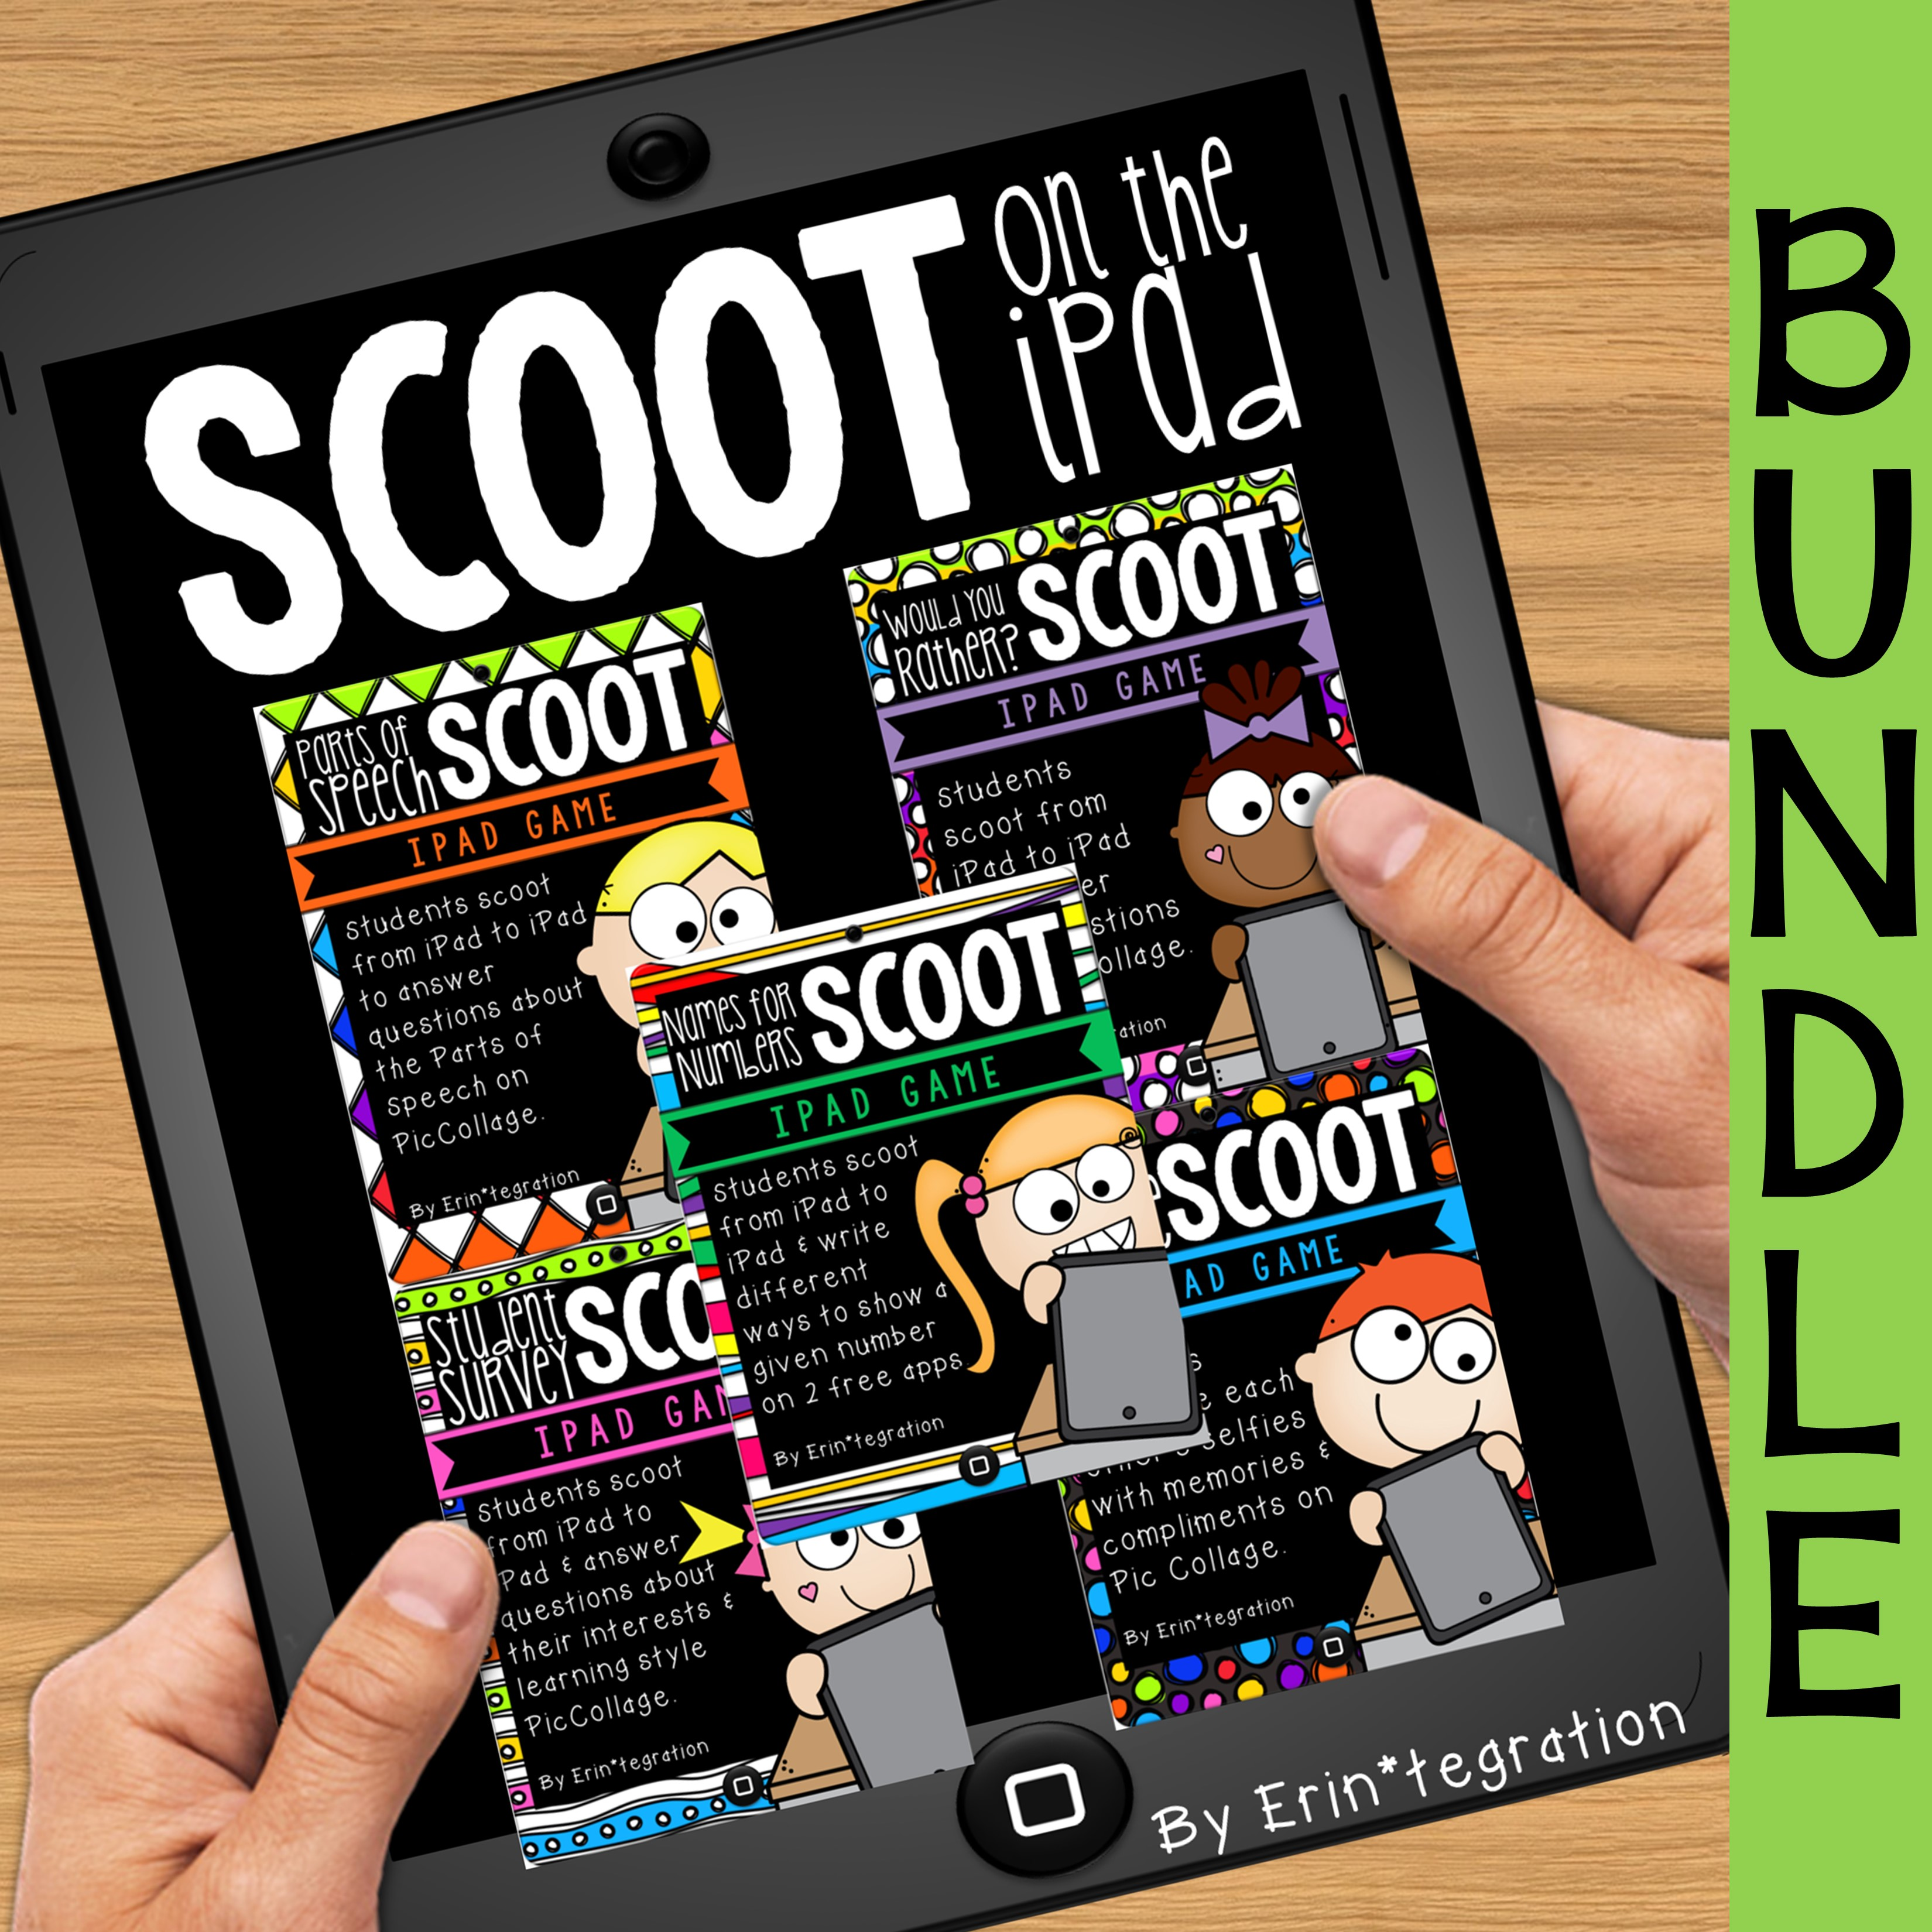 Scoot on the iPad Games